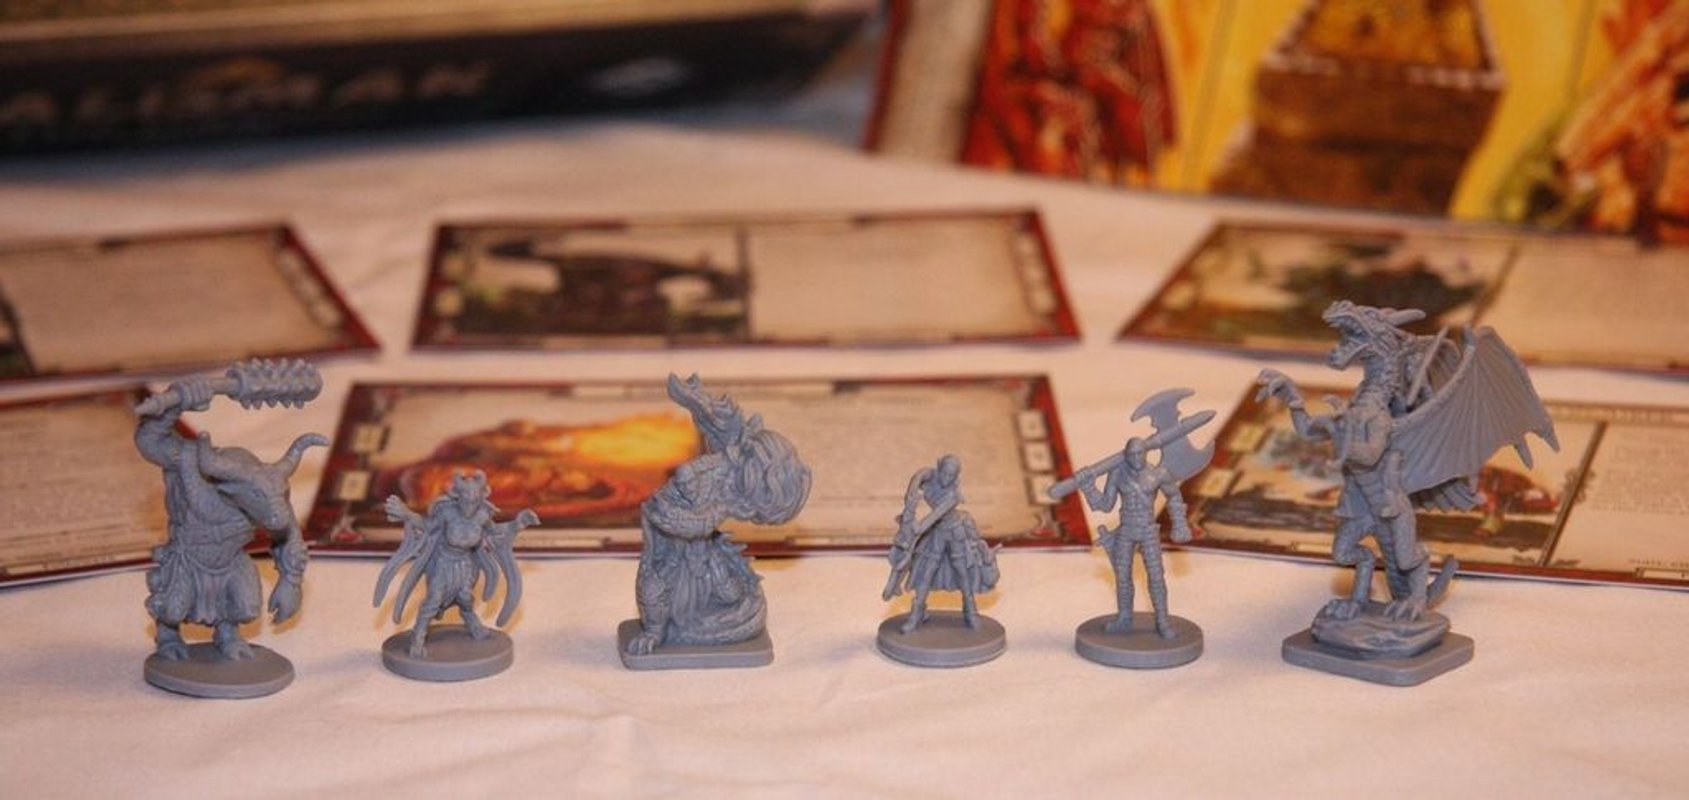 Talisman (Revised 4th Edition): The Dragon Expansion miniatures